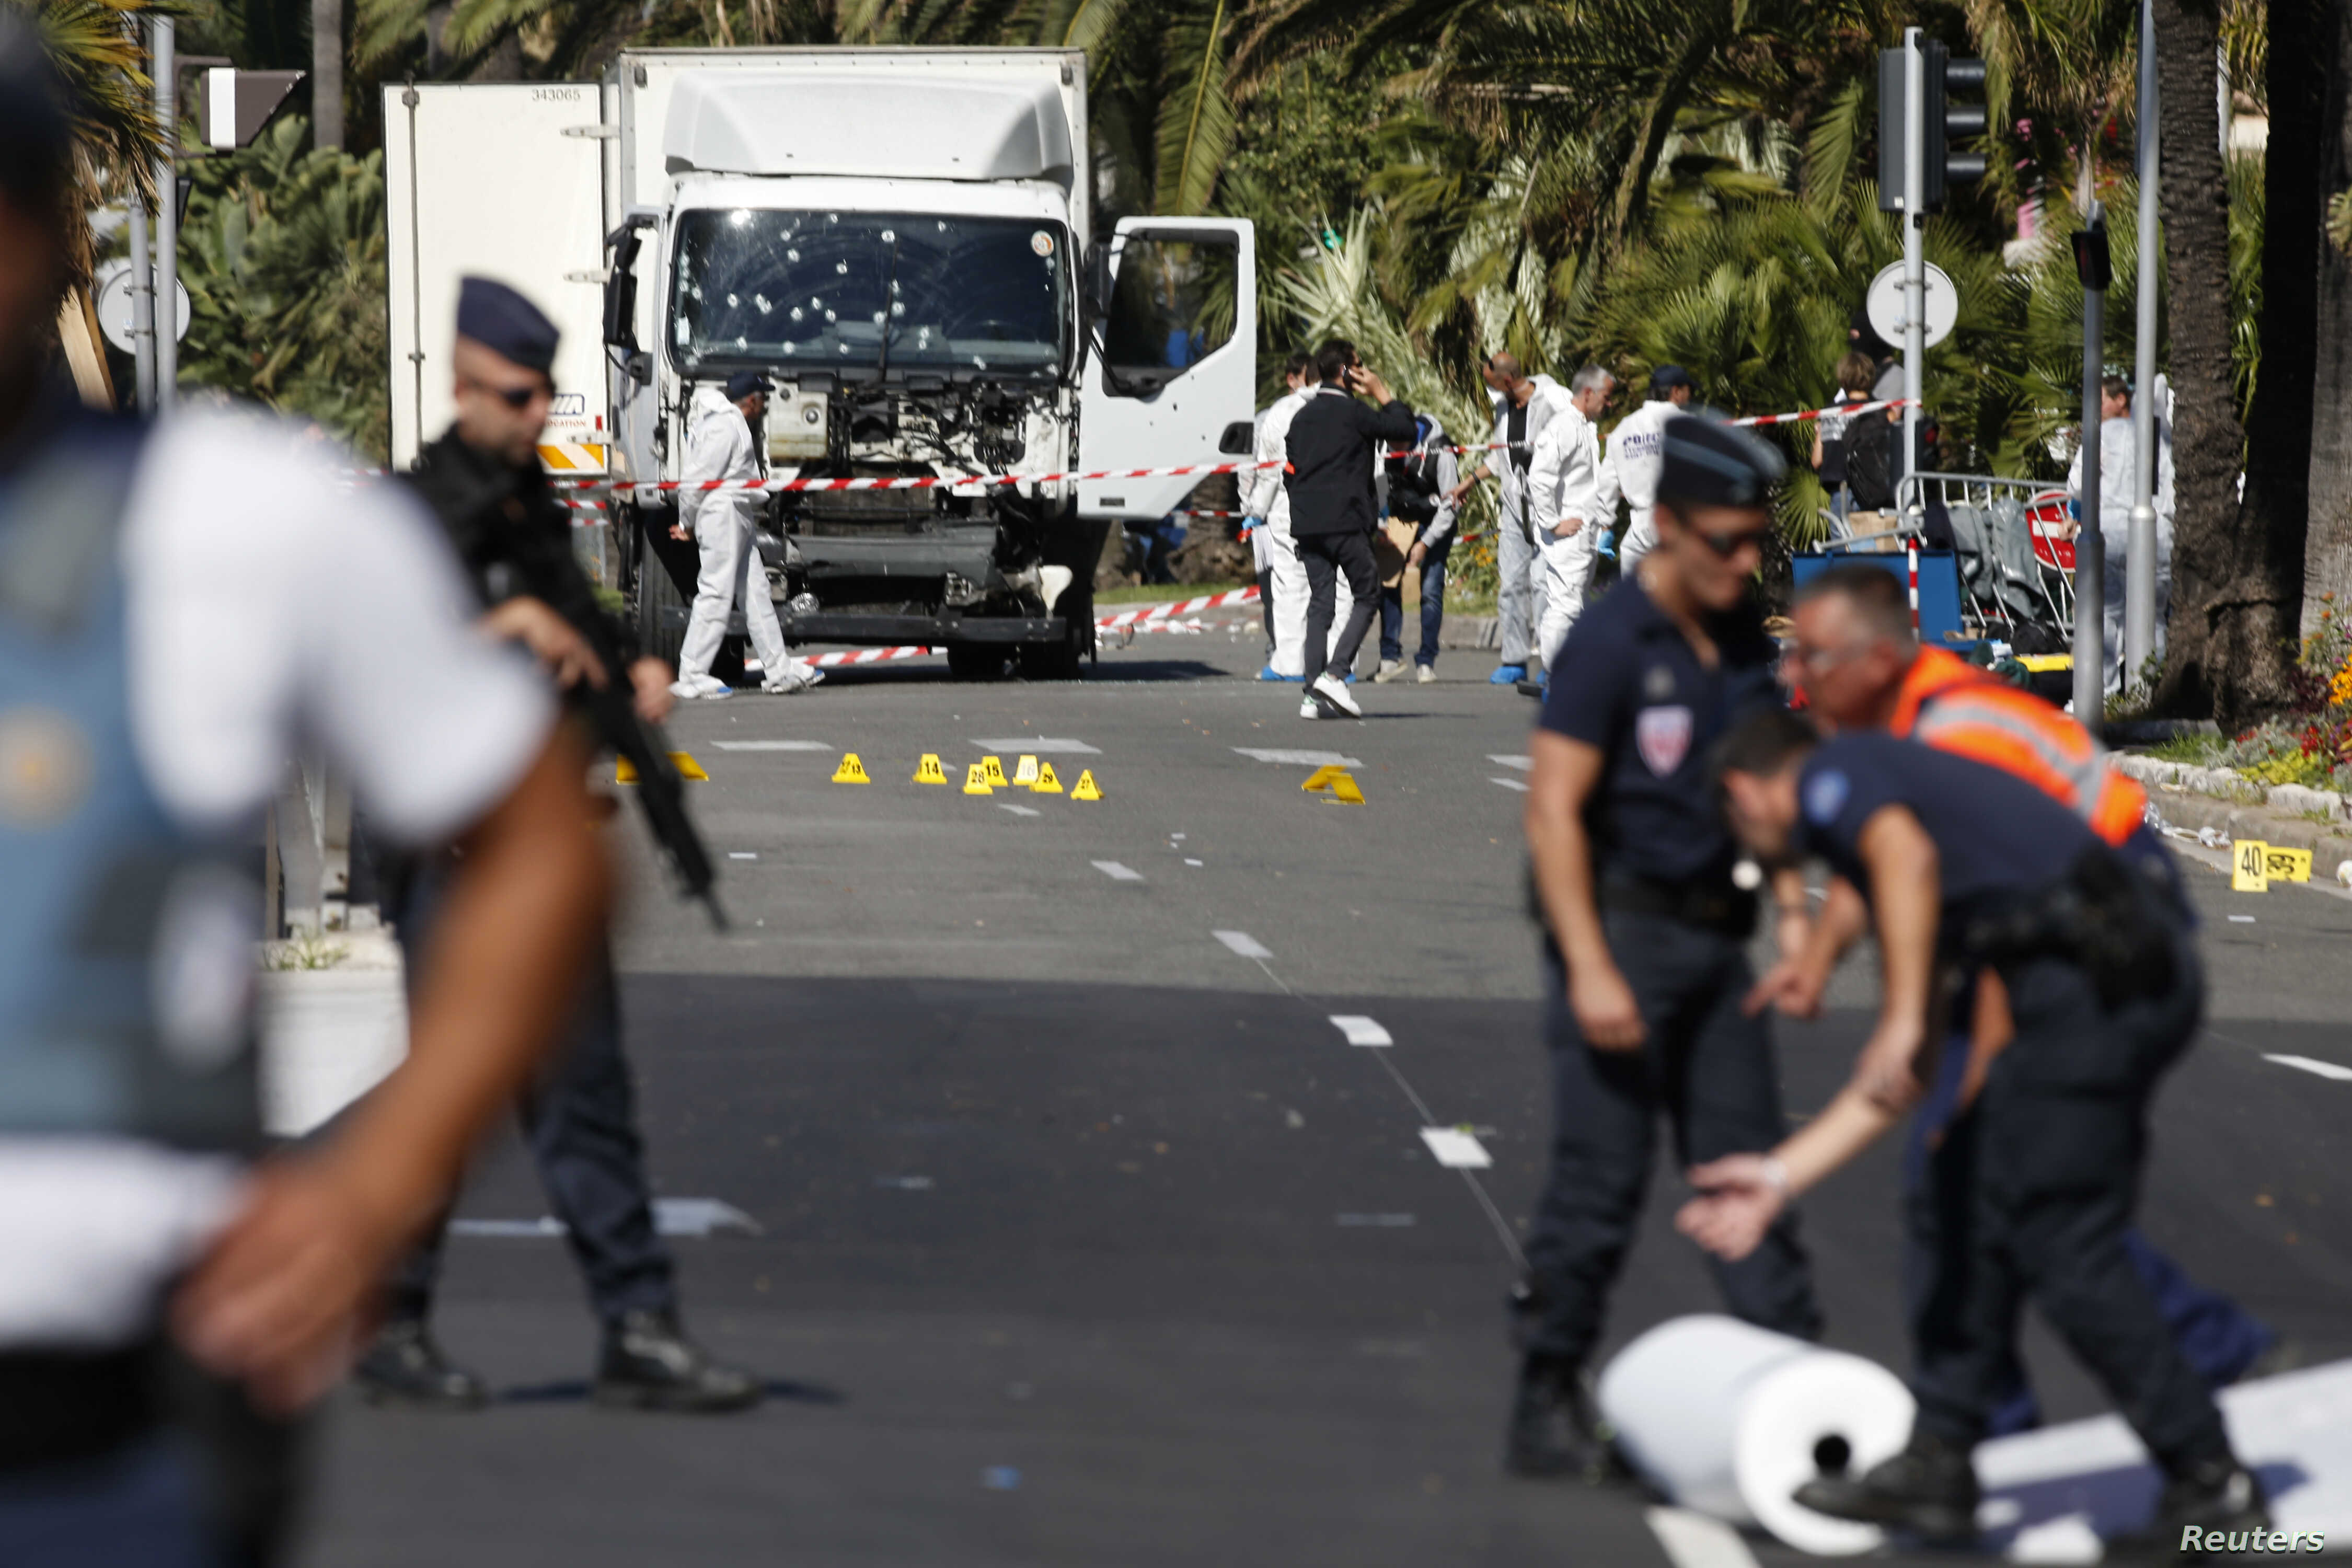 French police secure the area as the investigation continues at the scene near the heavy truck that ran into a crowd at high speed killing scores who were celebrating the Bastille Day July 14 national holiday on the Promenade des Anglais in Nice, Fra...